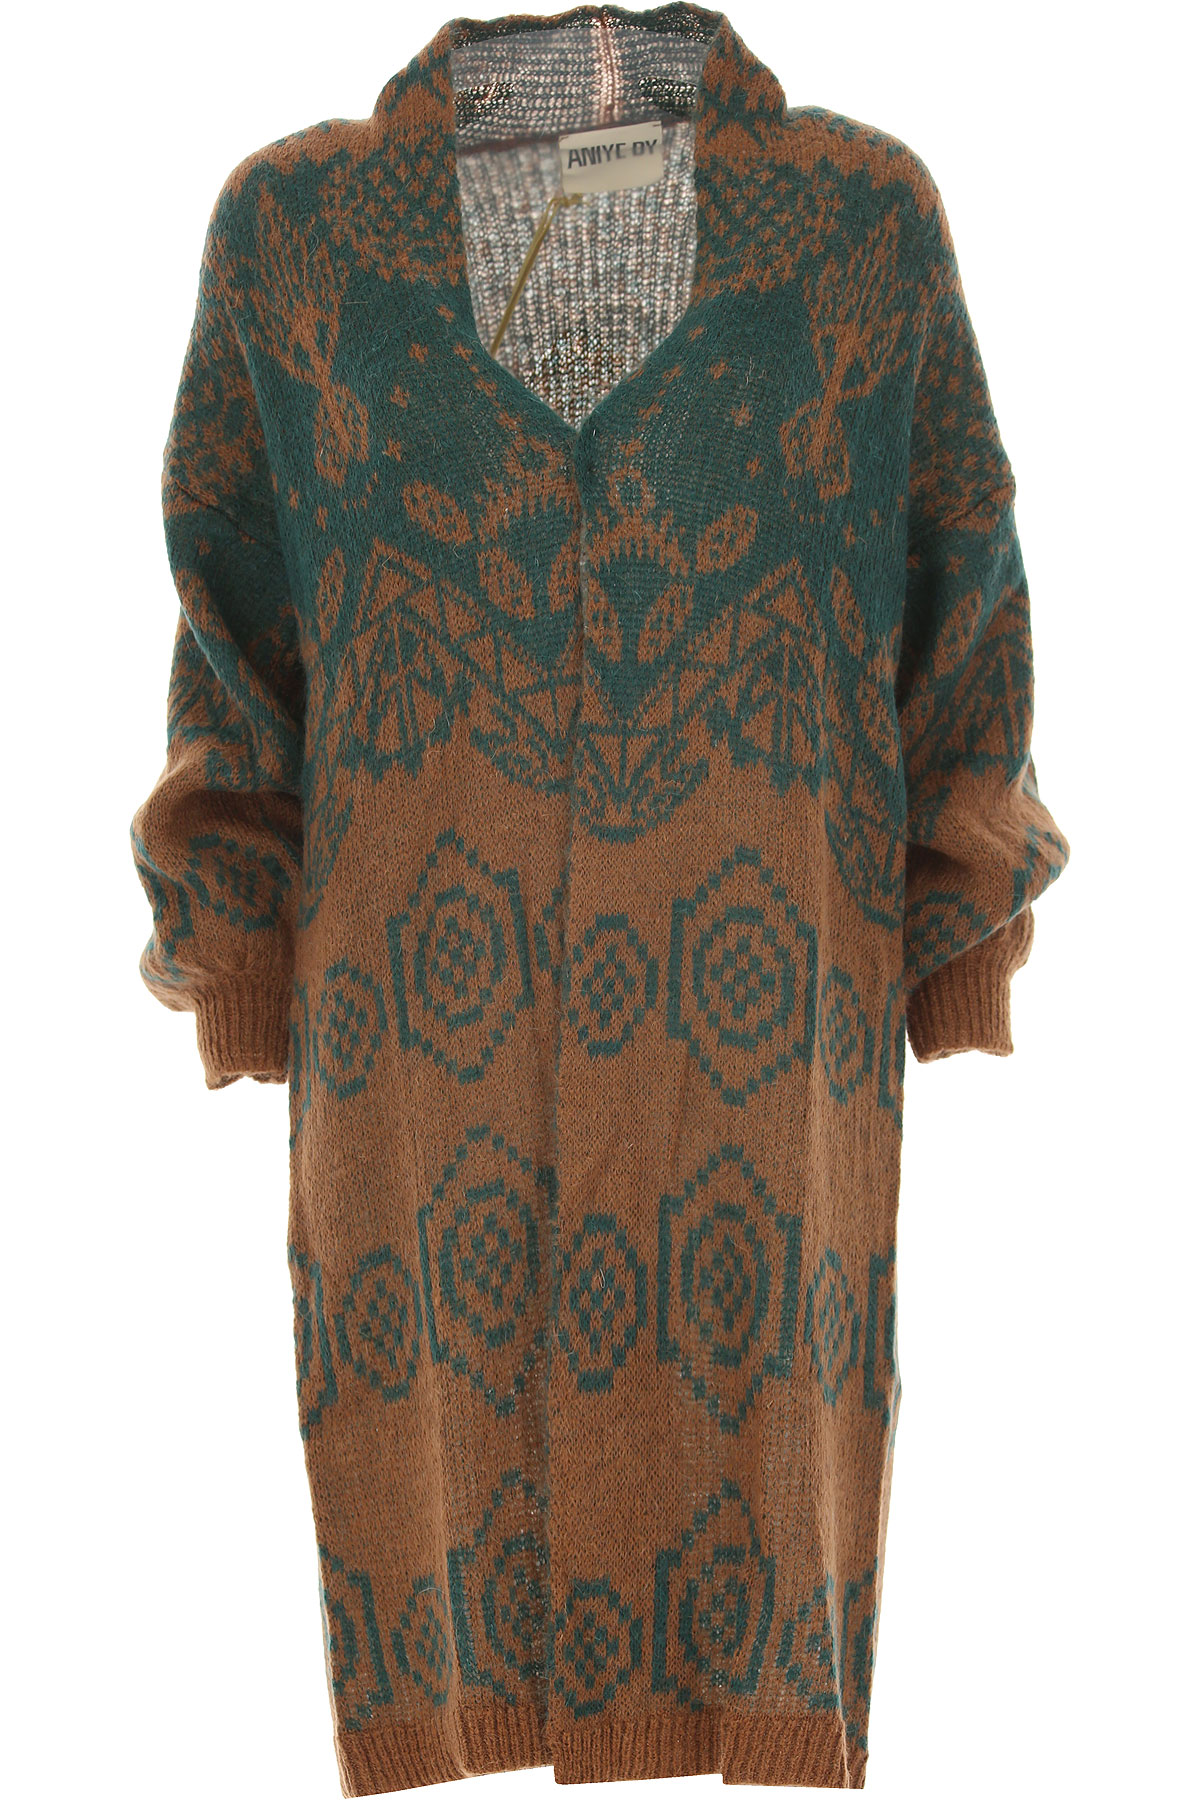 Image of Aniye By Sweater for Women Jumper, Brown, Mohair, 2017, 2 4 6